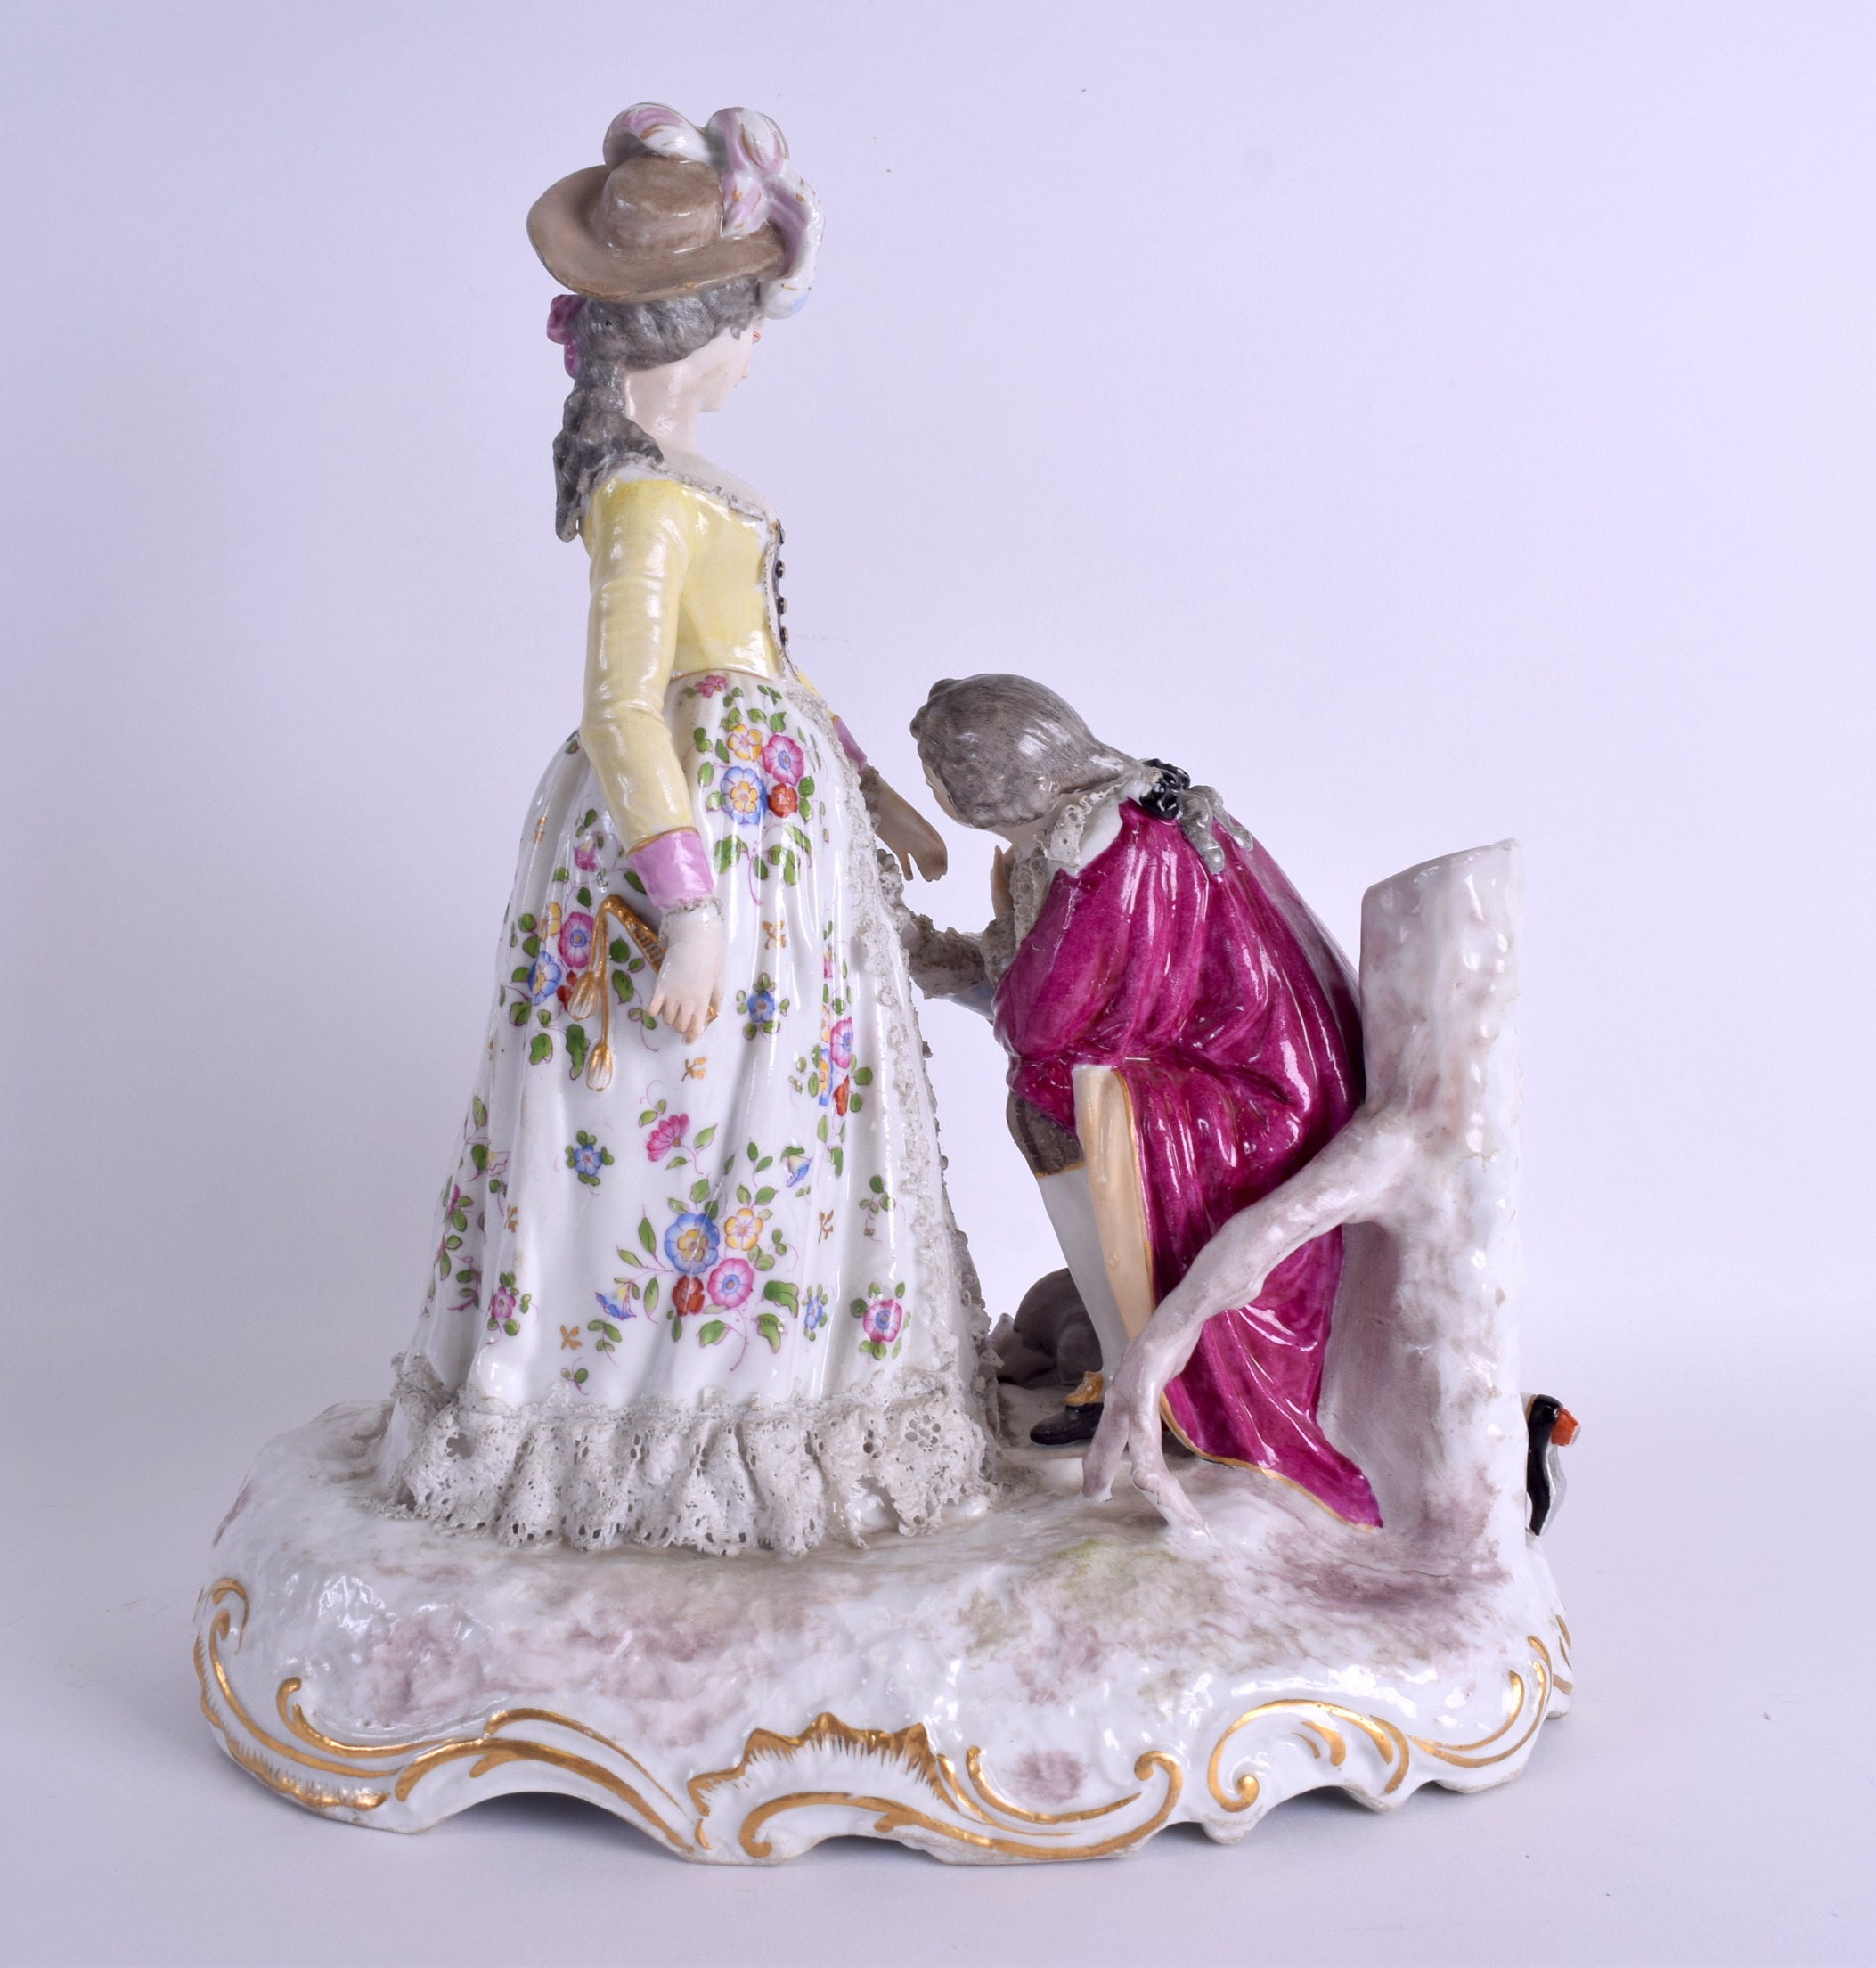 Lot 108 - A LARGE 19TH CENTURY GERMAN DRESDEN PORCELAIN FIGURAL GROUP modelled as a male kneeling before a